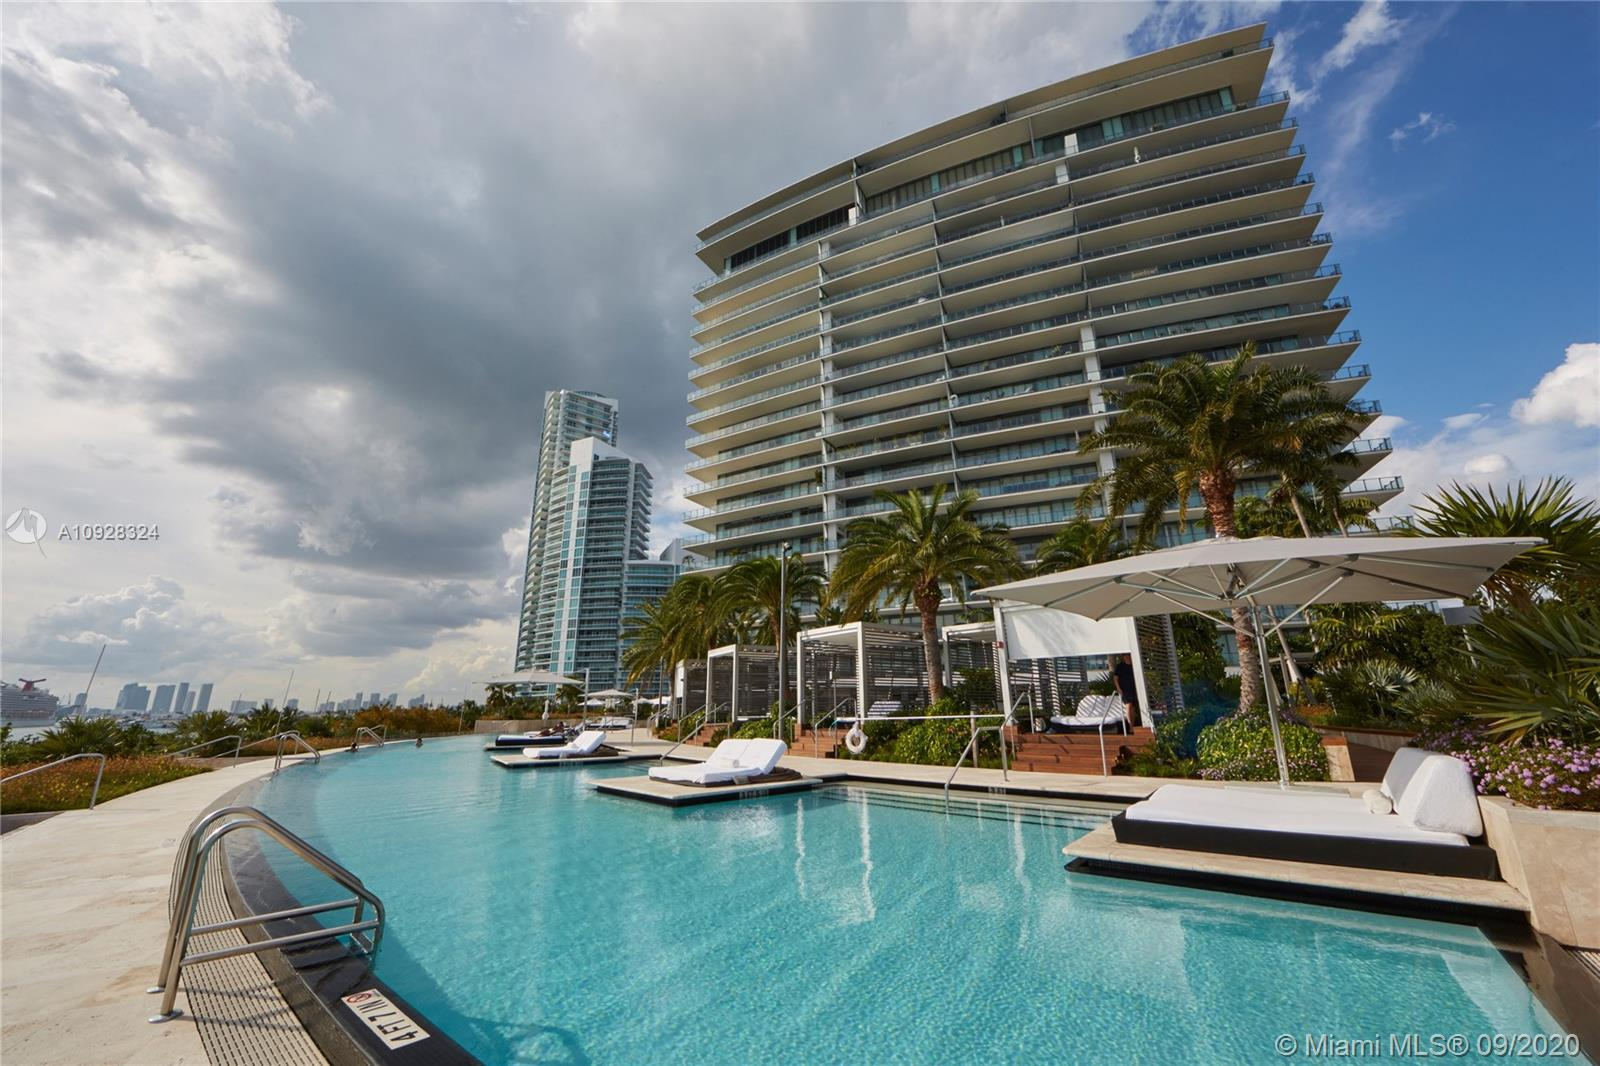 800 S Pointe Dr, Unit #2004 Luxury Real Estate